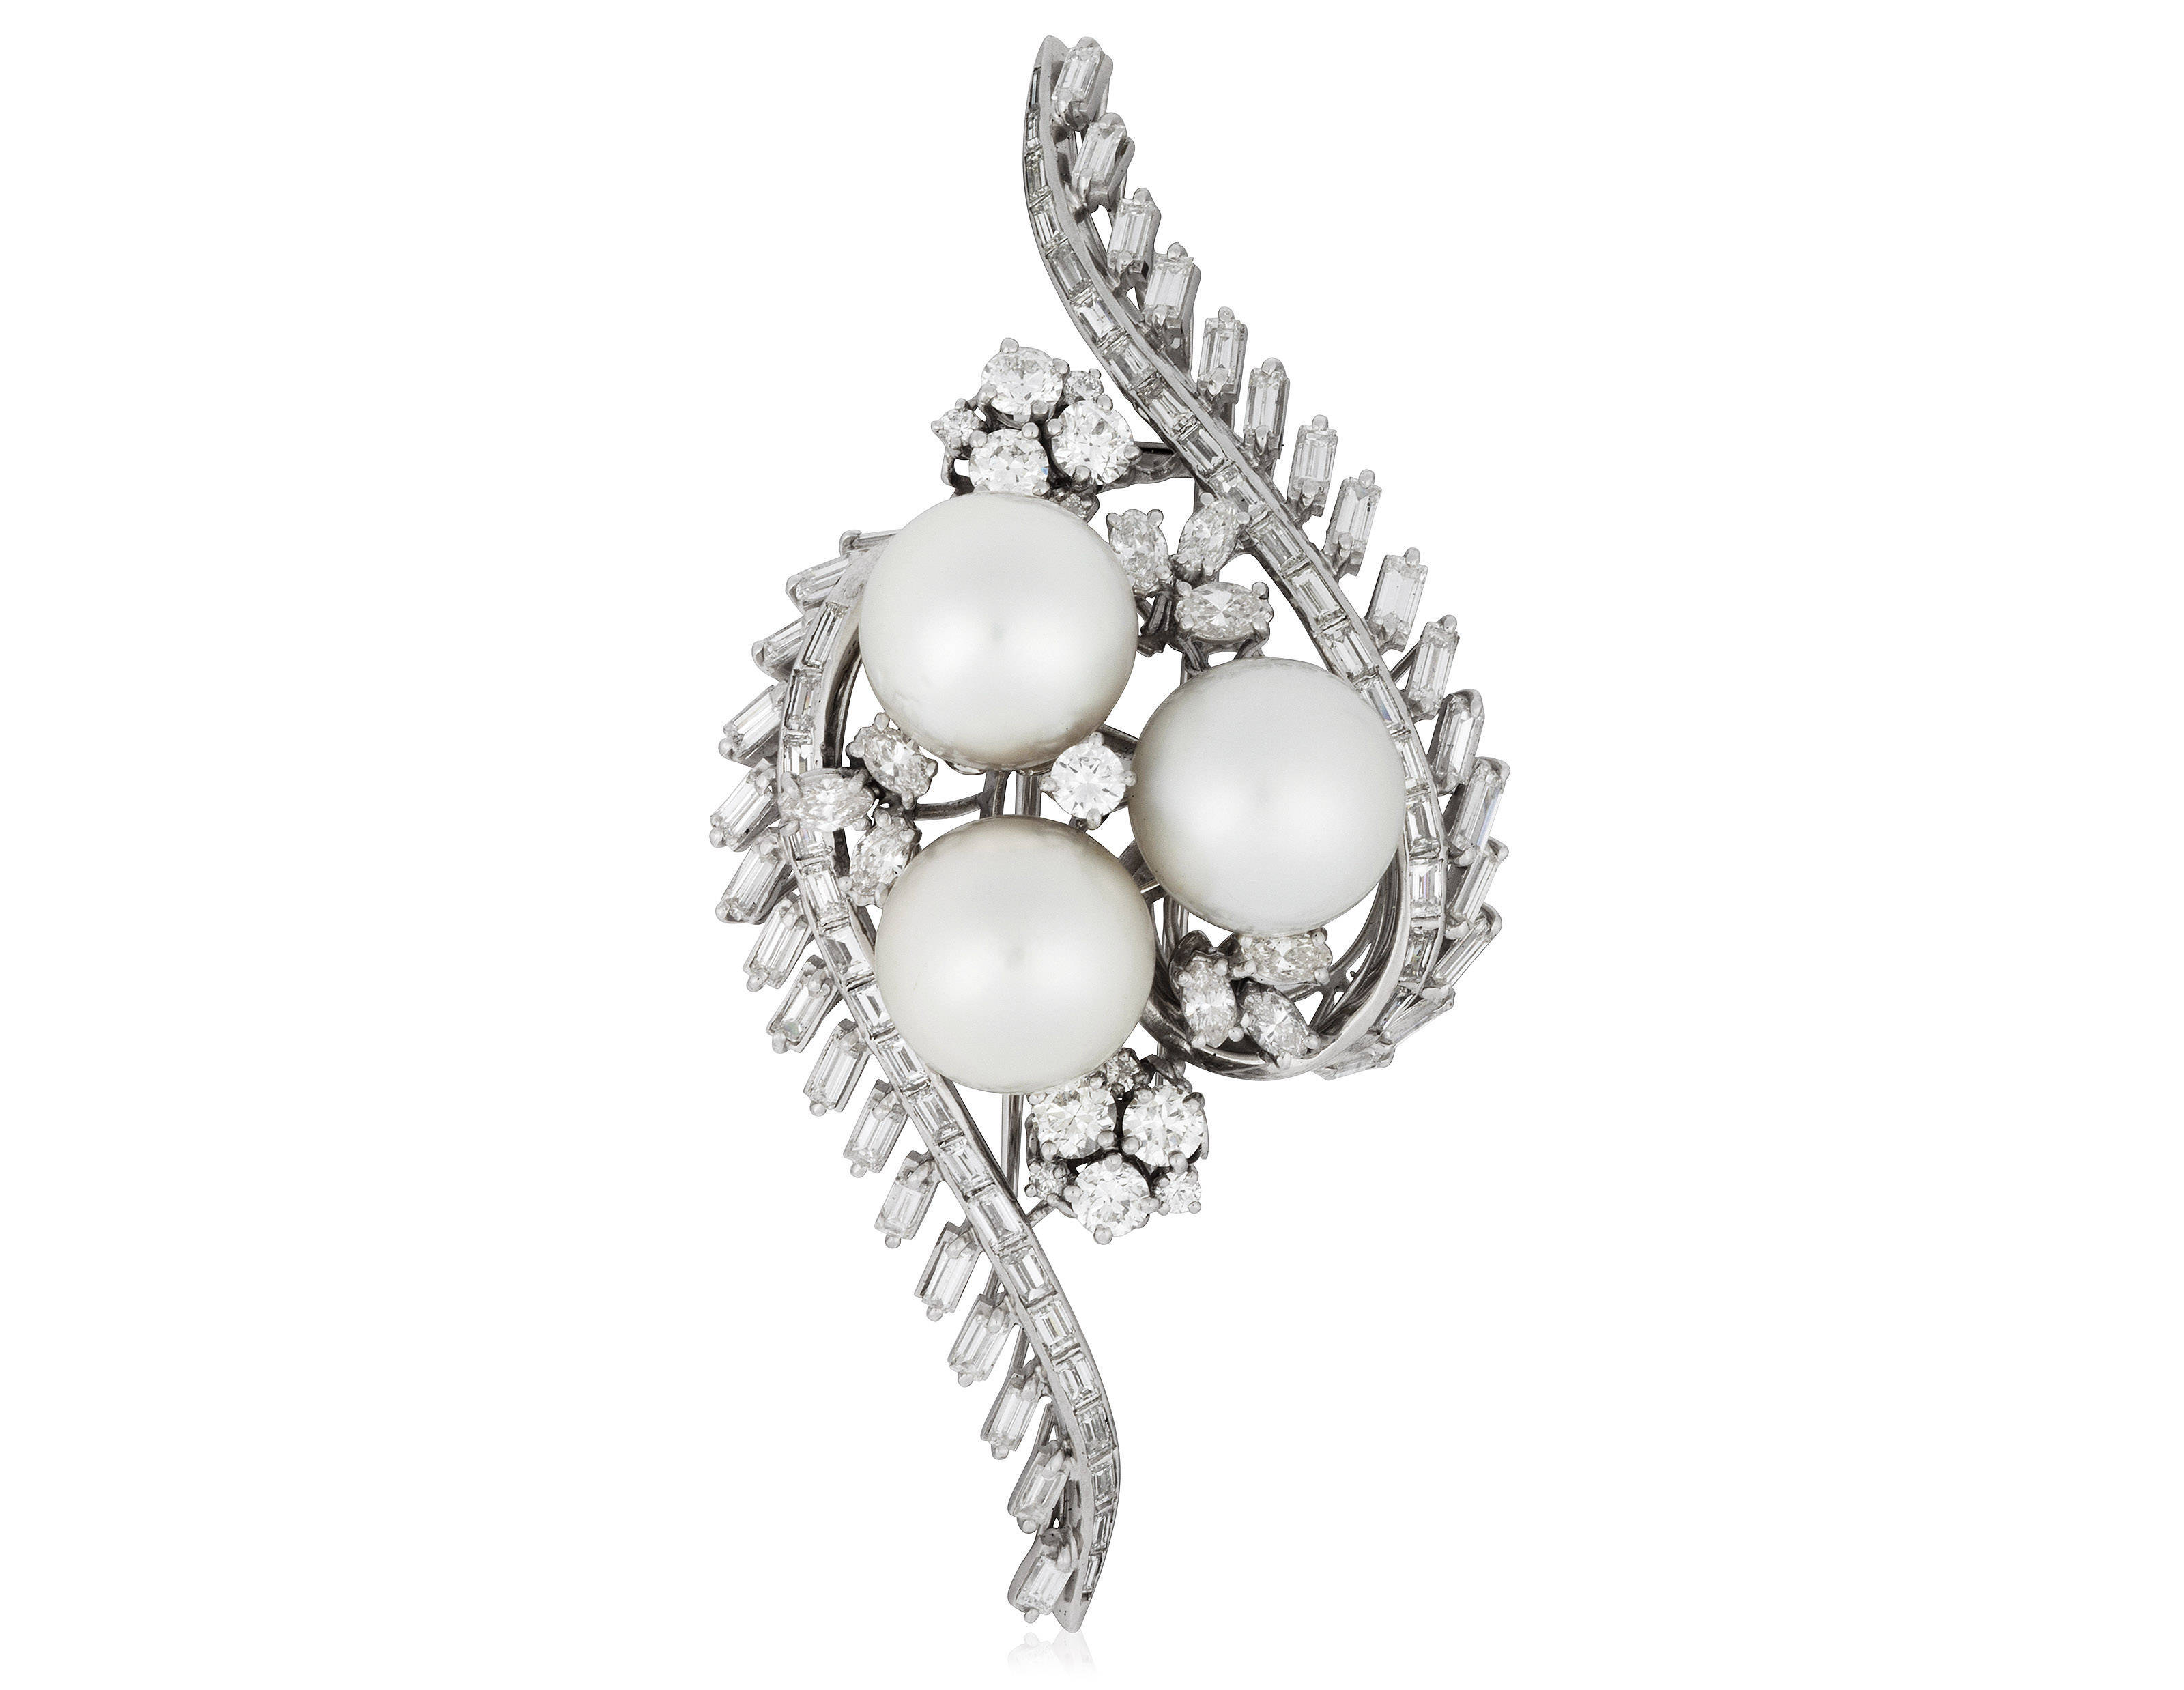 HARRY WINSTON CULTURED PEARL A